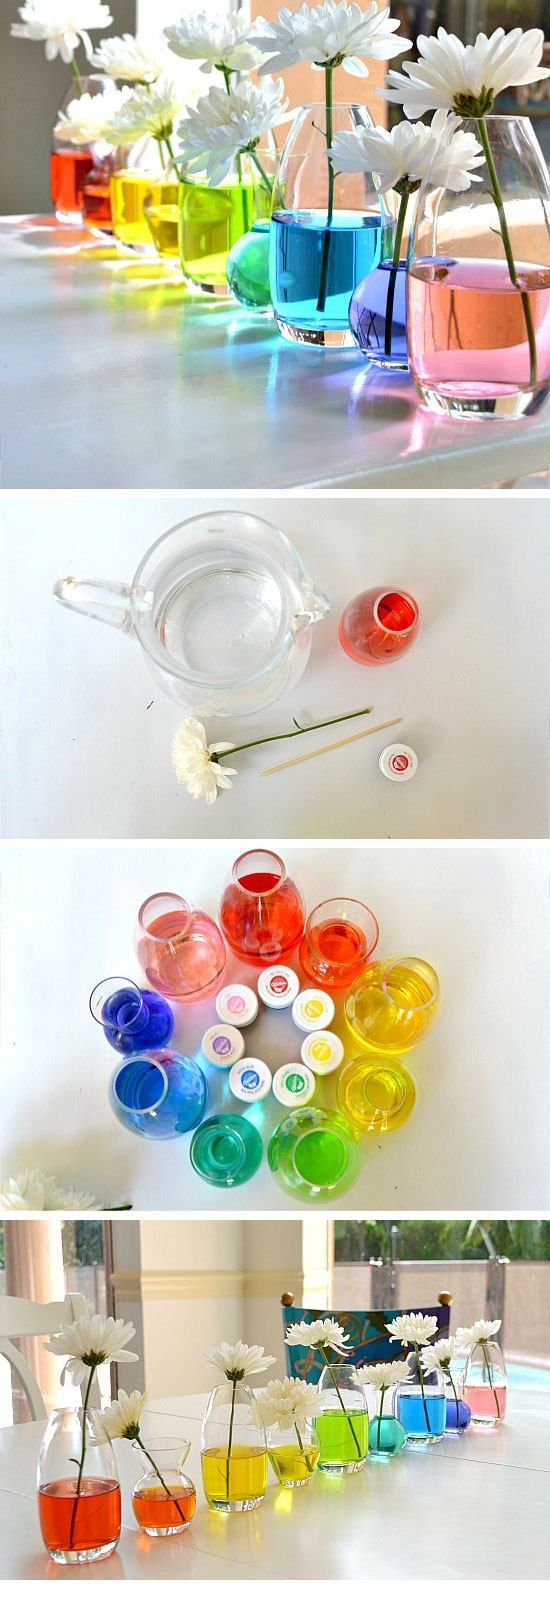 Rainbow Flower Centerpiece | DIY Spring Decorations for the Home